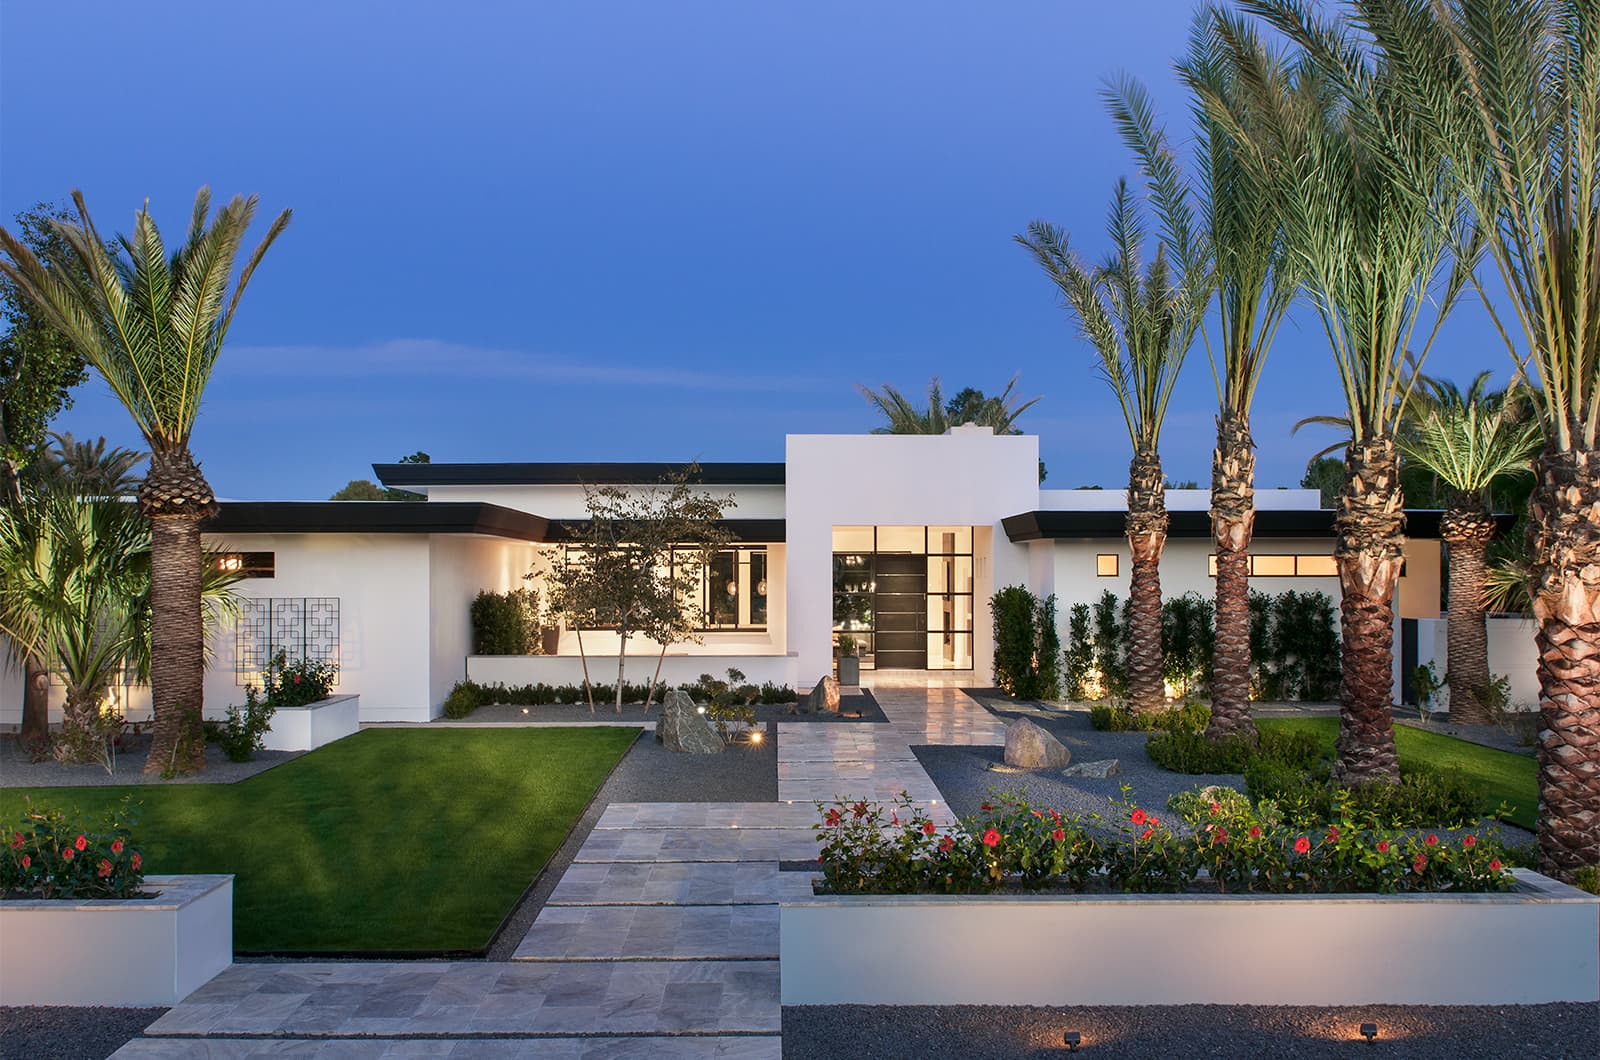 Balinese Style House With An Outdoor Resort Feel